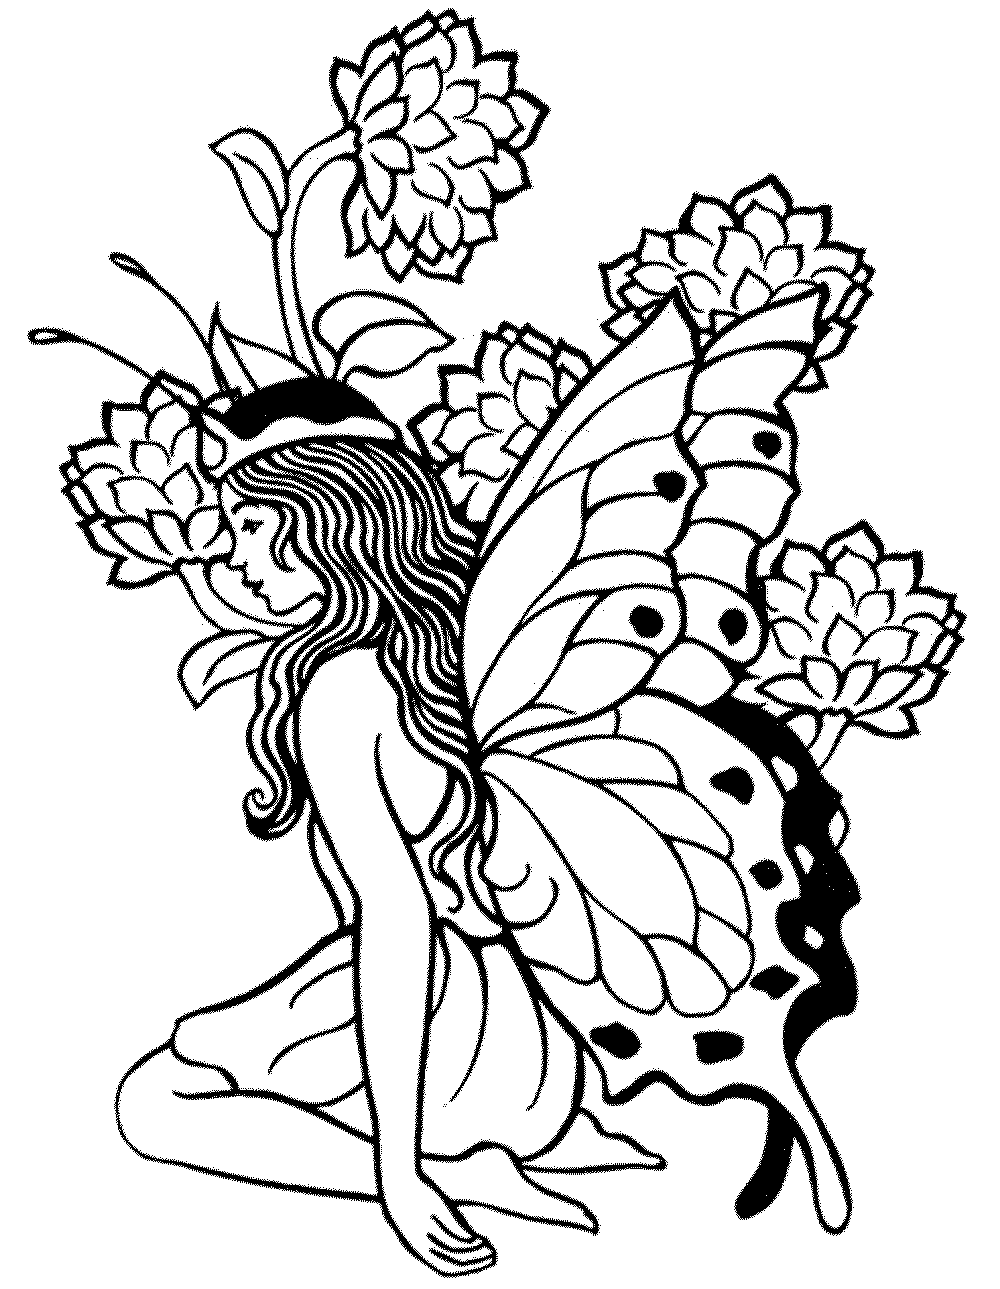 Survival Free Printable Fantasy Coloring Pages For Adults Fairy